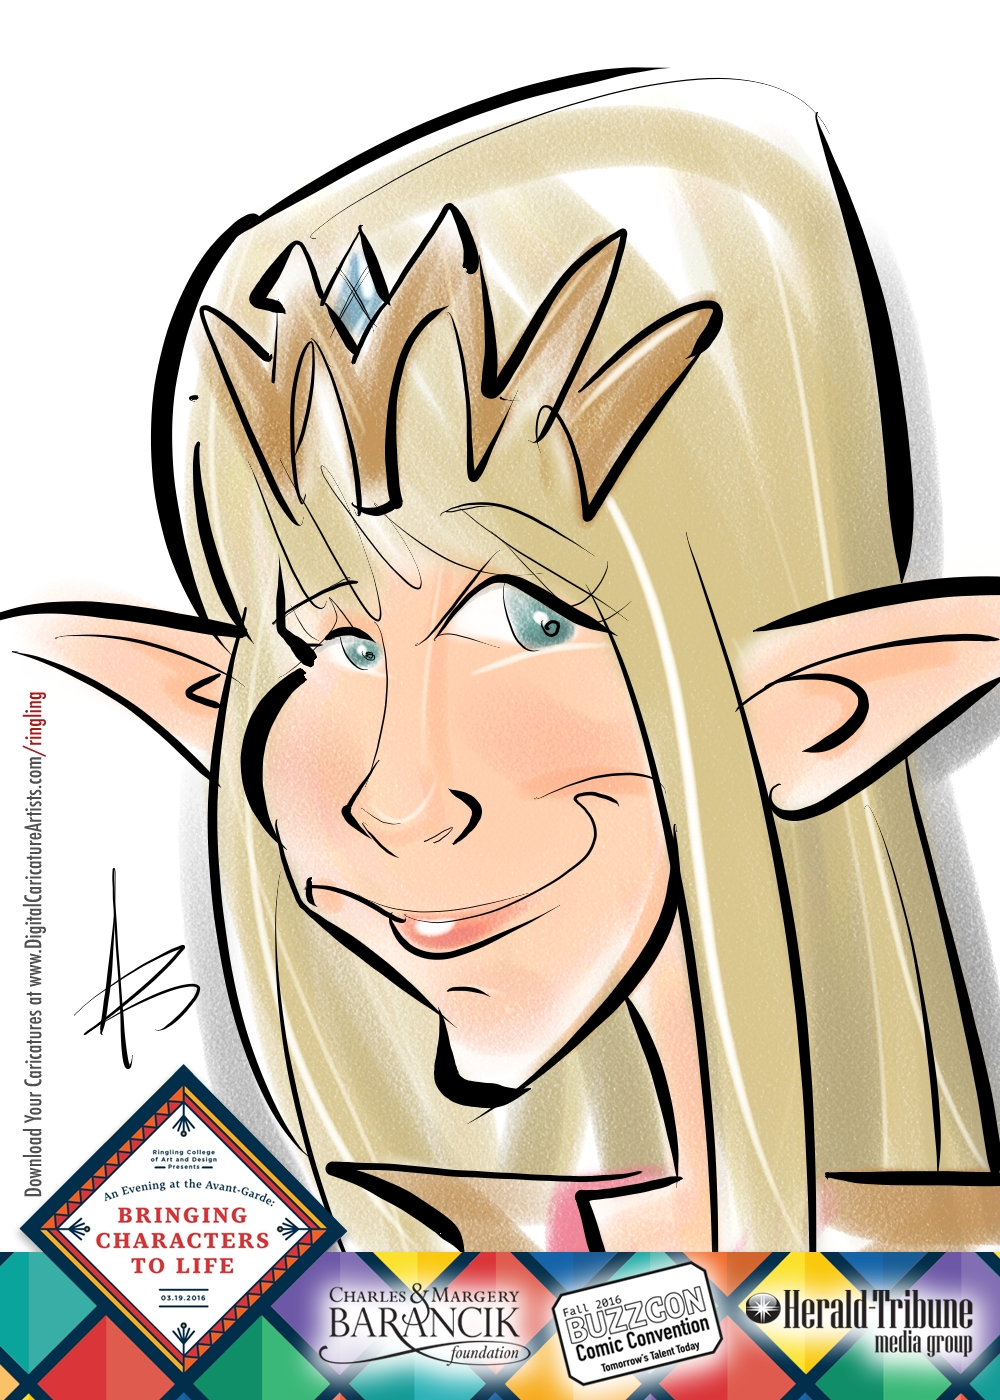 Elf Digital Caricature